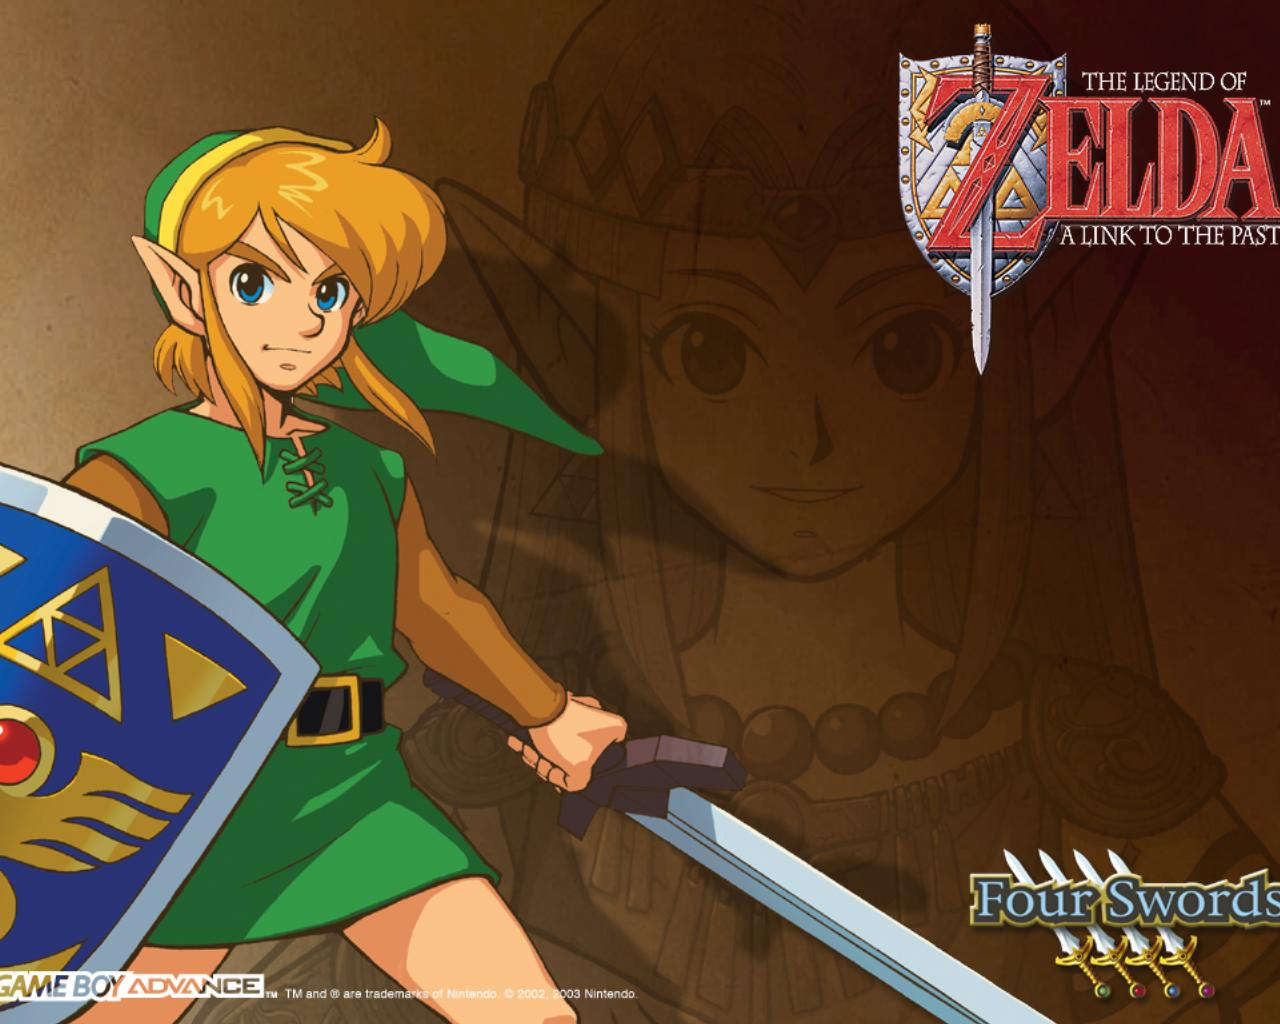 A Link To The Past The Legend Of Zelda Wallpaper 39031673 Fanpop